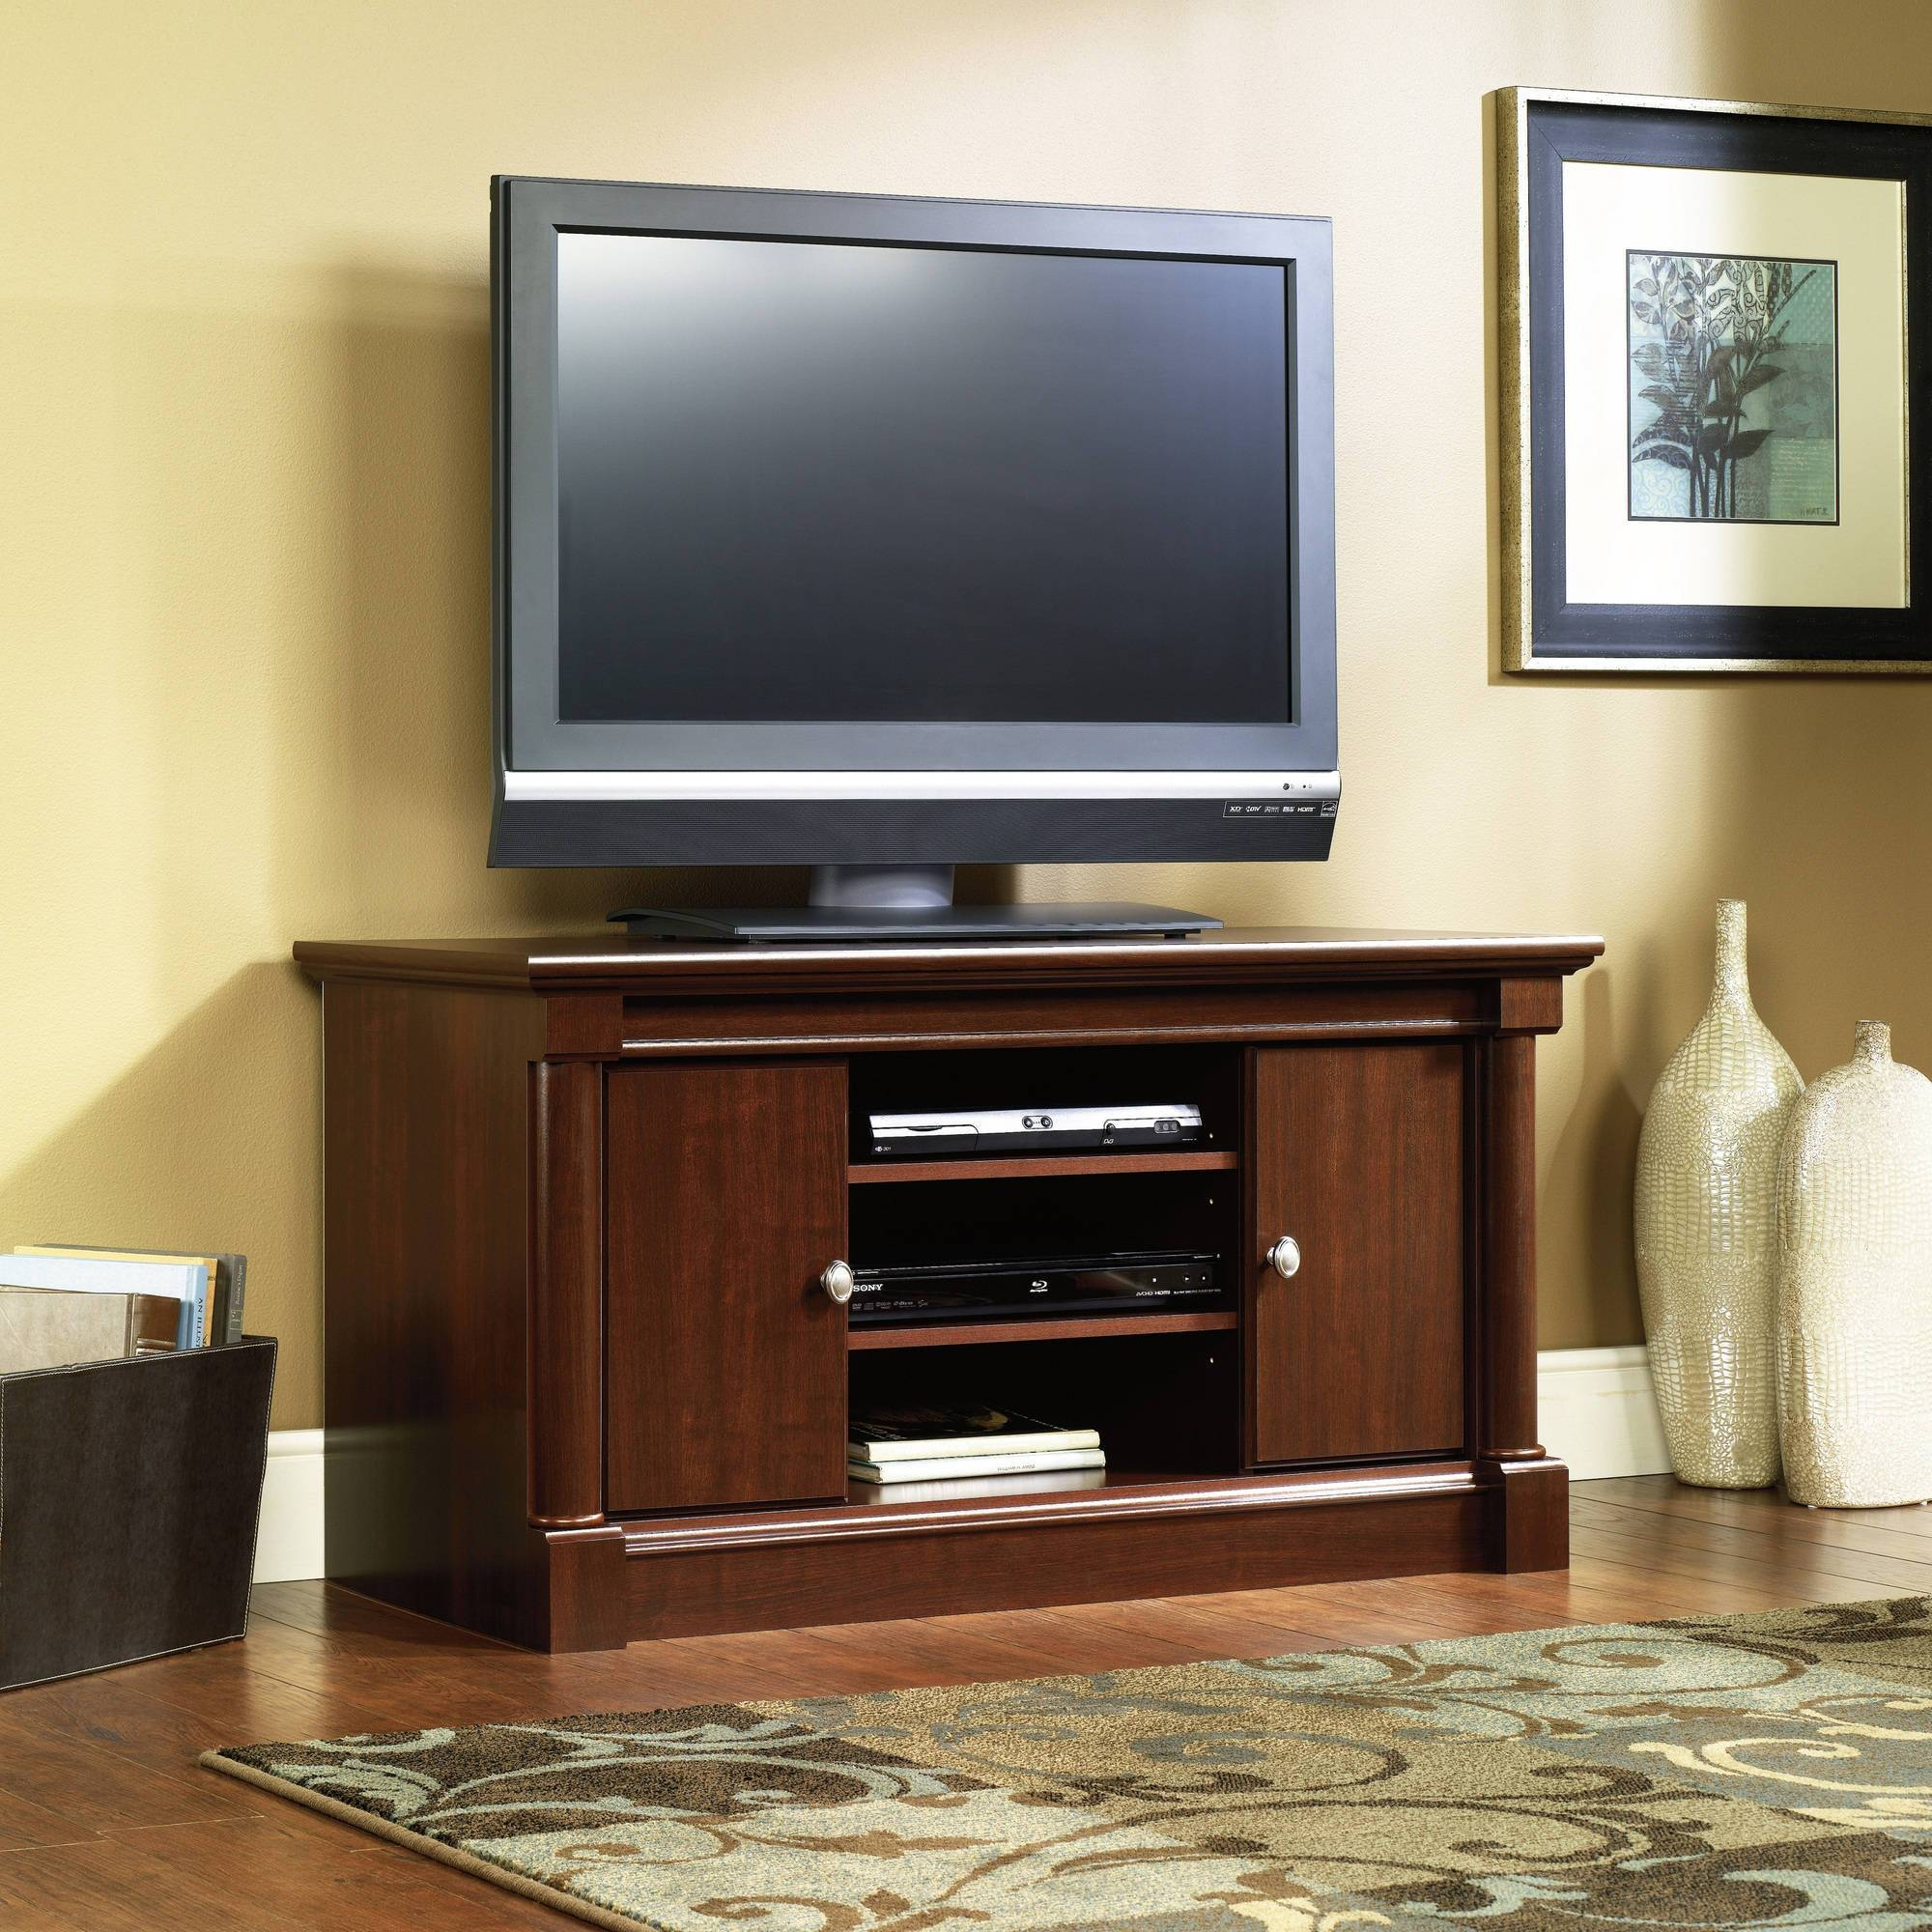 Furniture: Banquette Bench With Minka Lavery Also Sauder Tv Stands for Bench Tv Stands (Image 9 of 15)